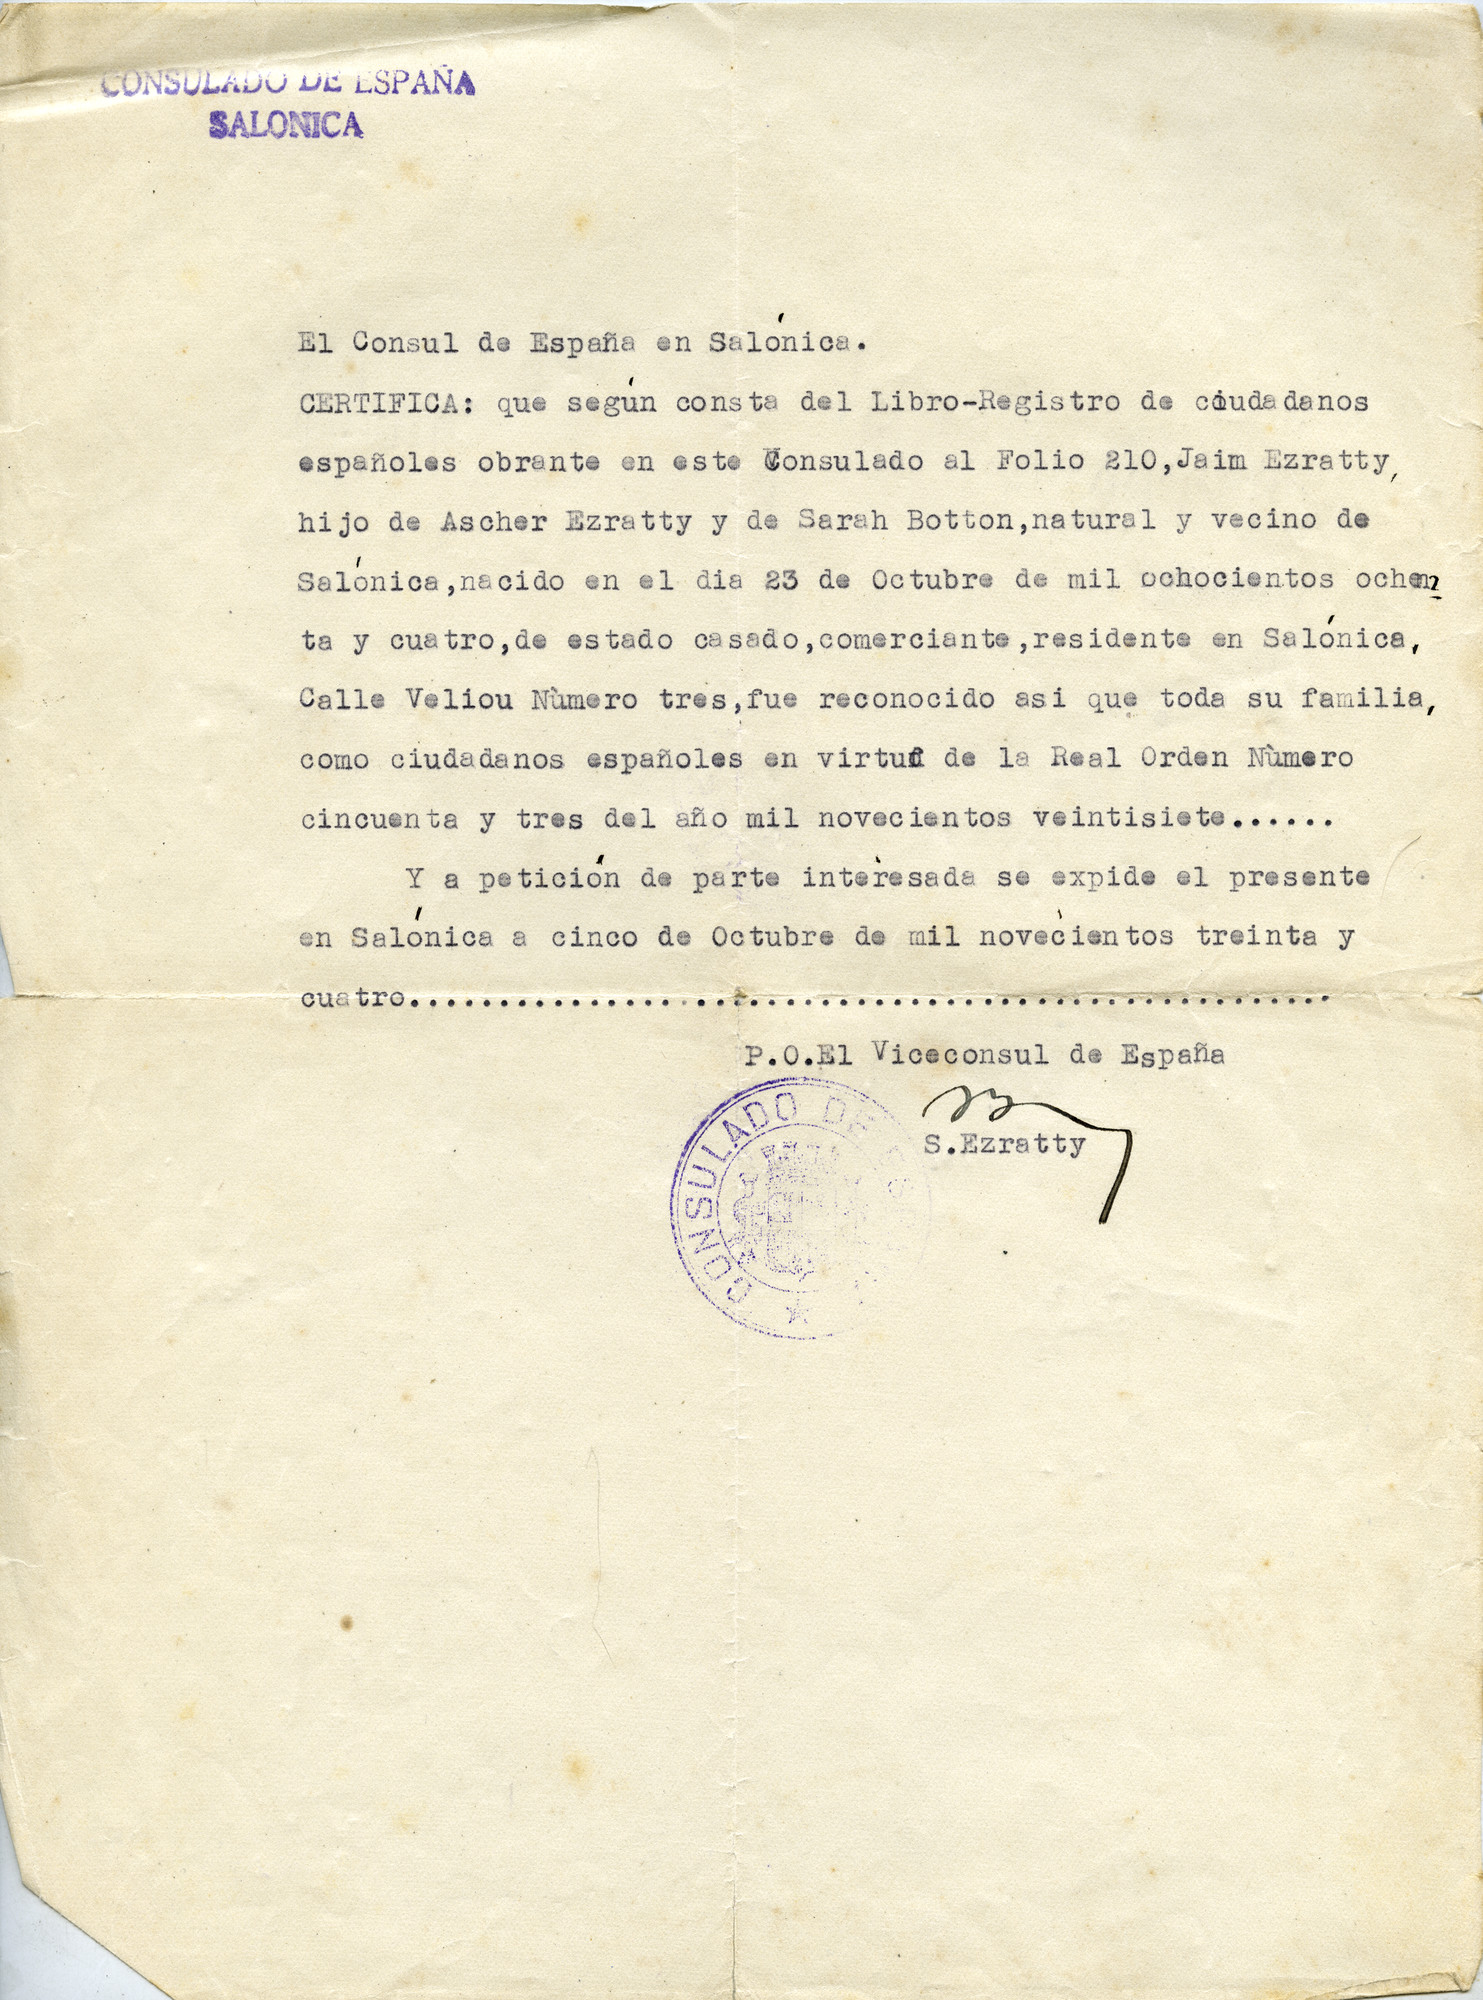 Certificate issued by the Spanish consulate in Salonika testifying that Haim Ezratty was entitled to Spanish citizenship.